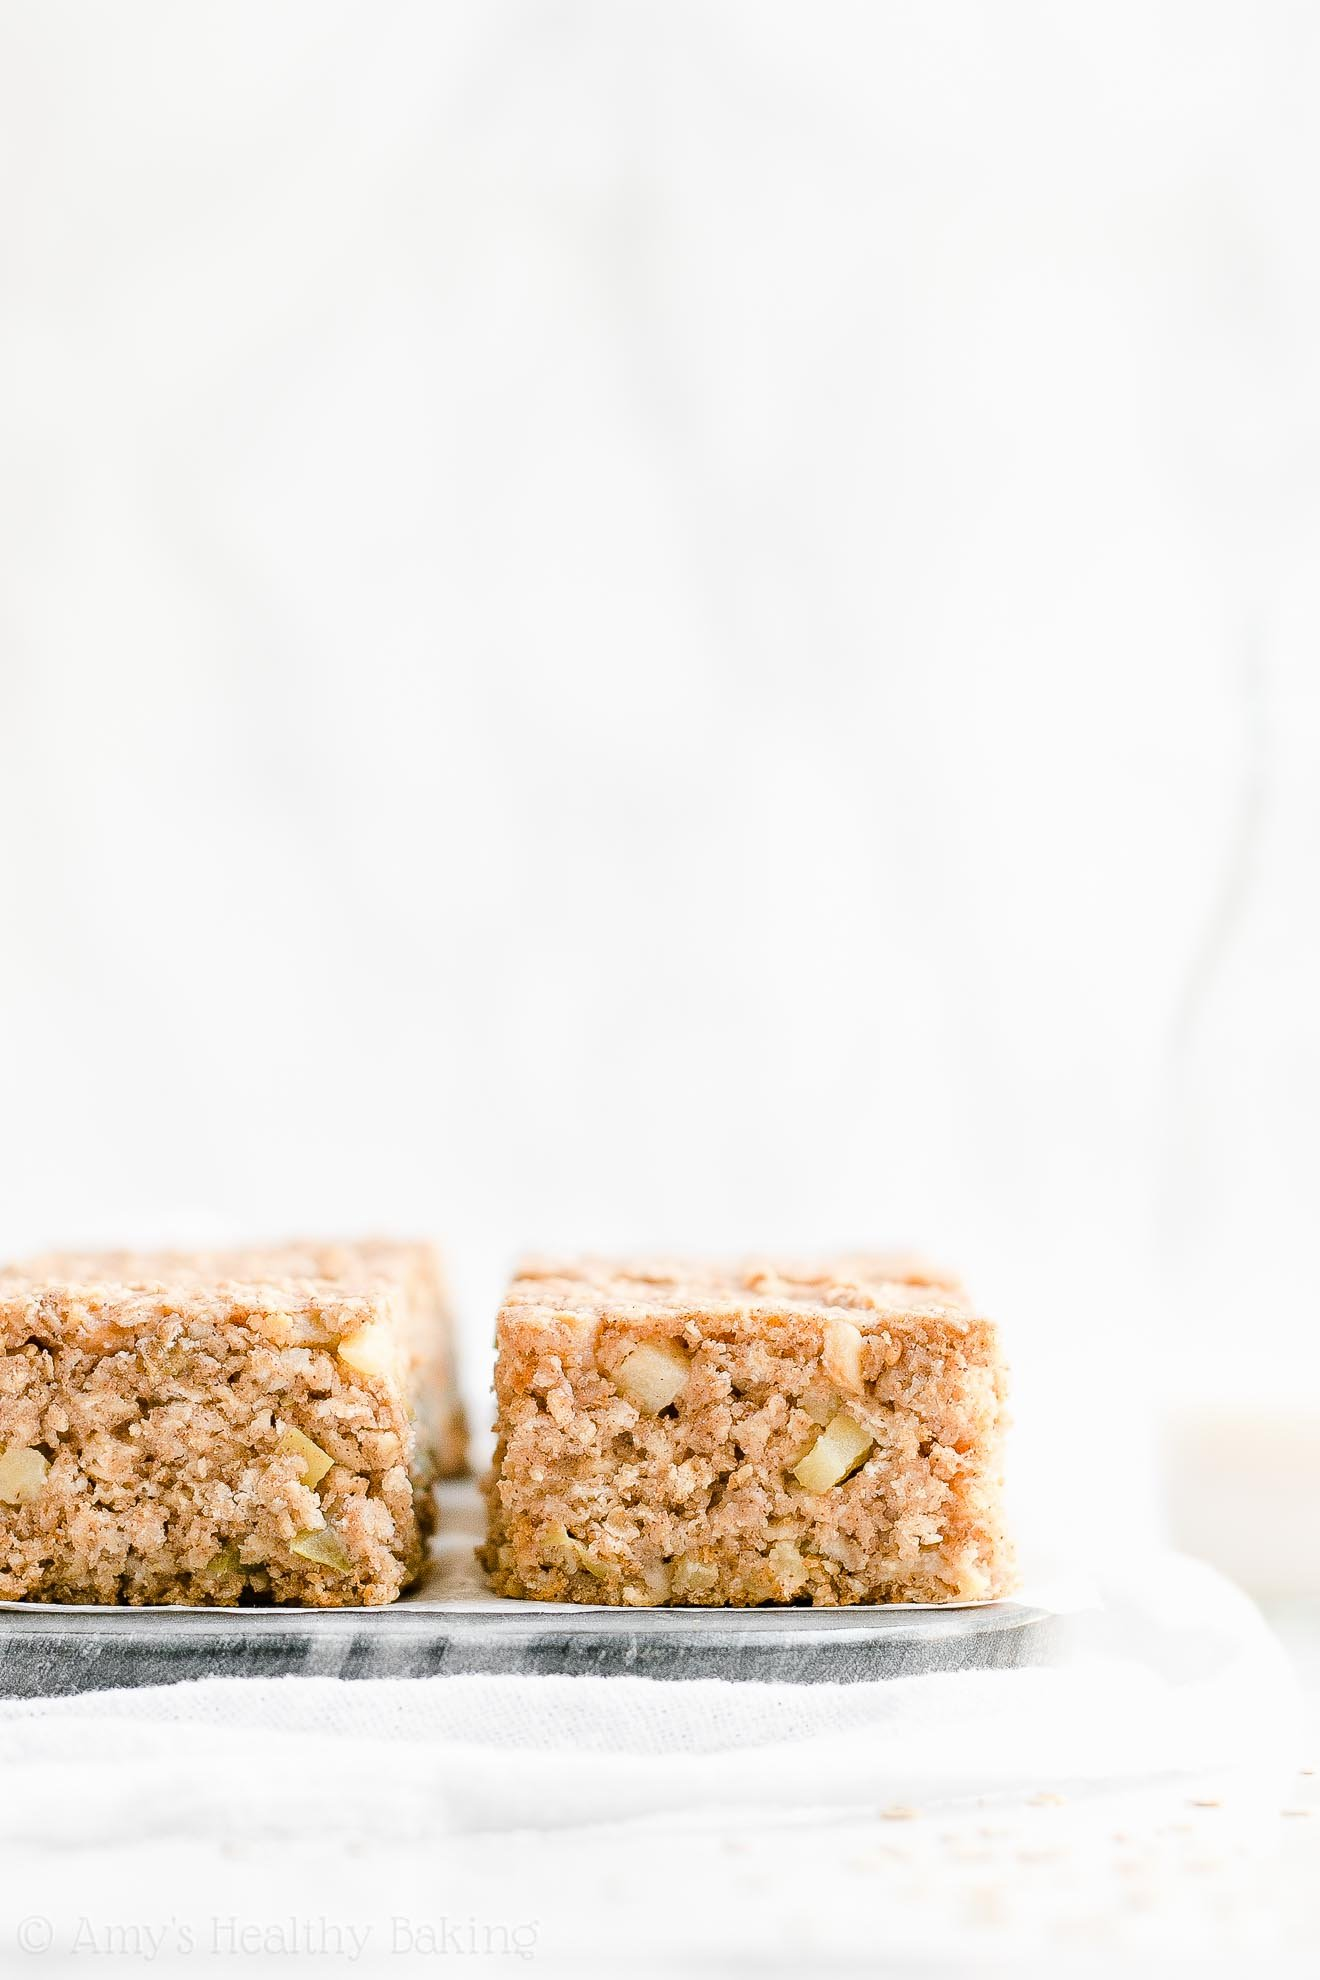 Healthy Gluten Free Cinnamon Apple Oatmeal Snack Cake